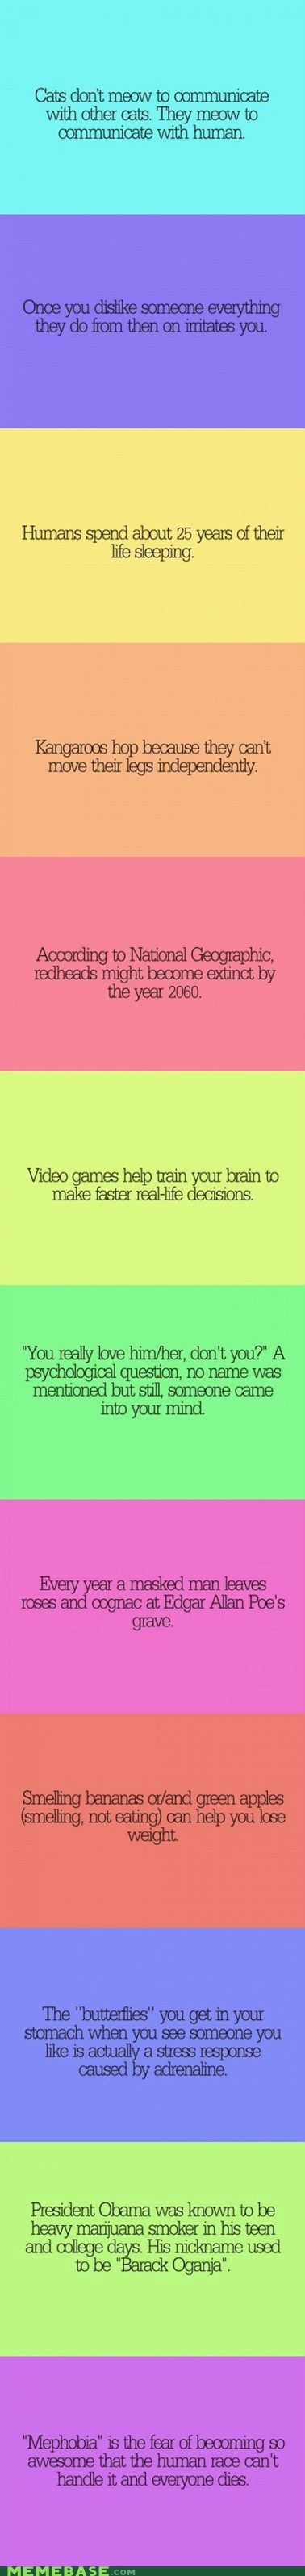 psycho facts « Find For Funny I like the weight one aha